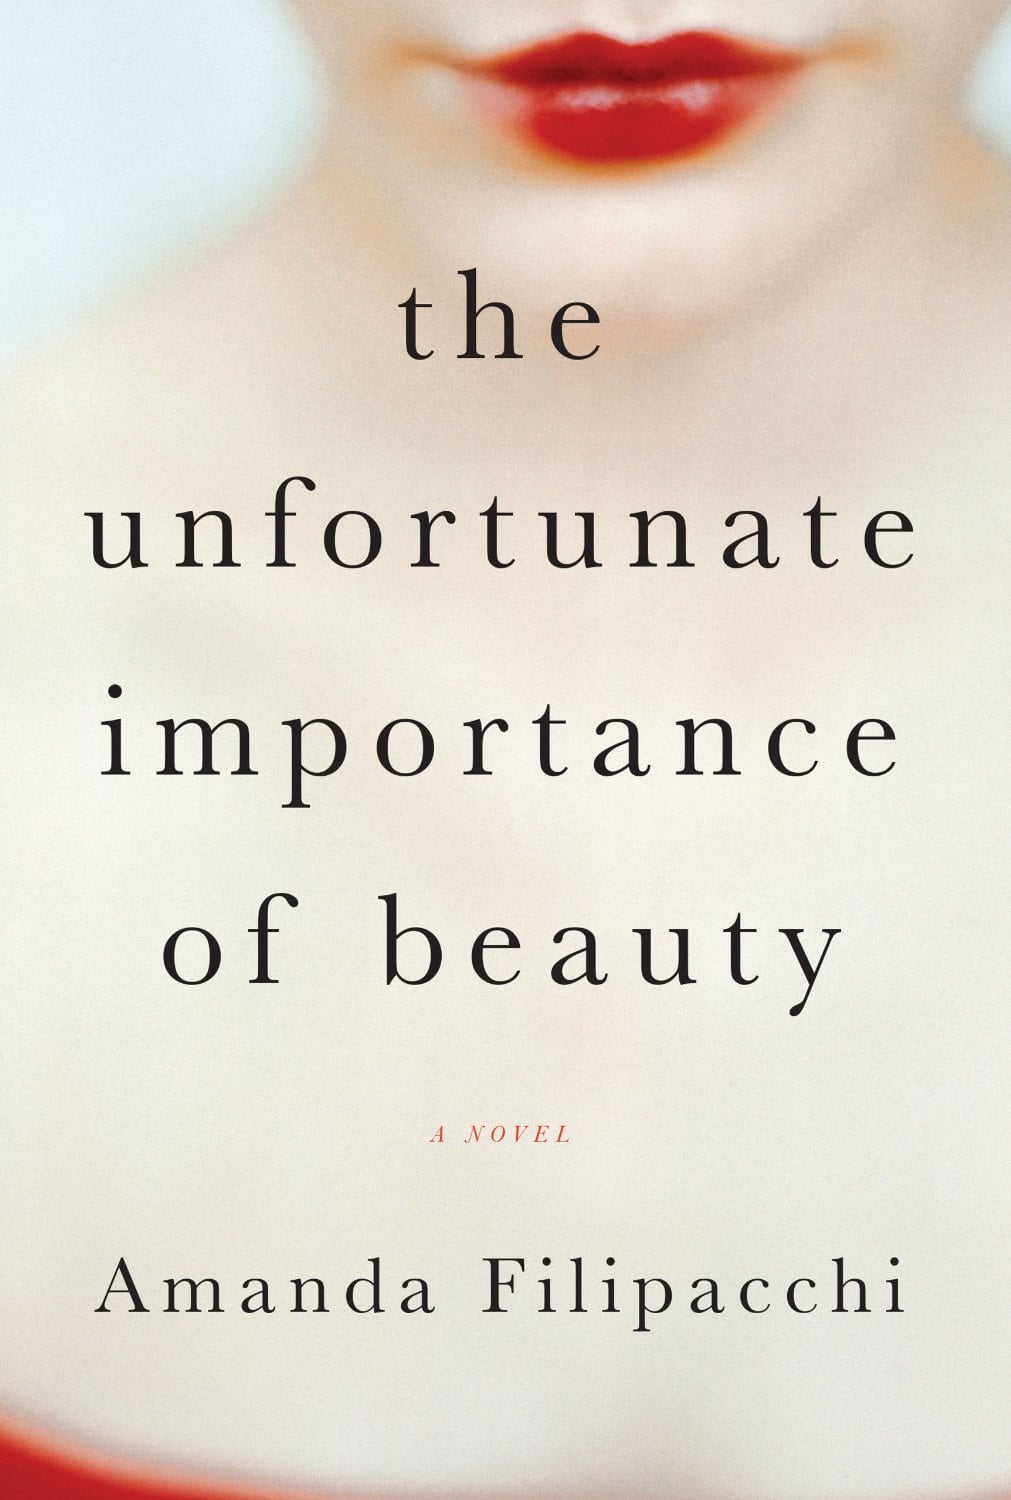 The Unfortunate Importance of Beauty - Amanda Filipacchi